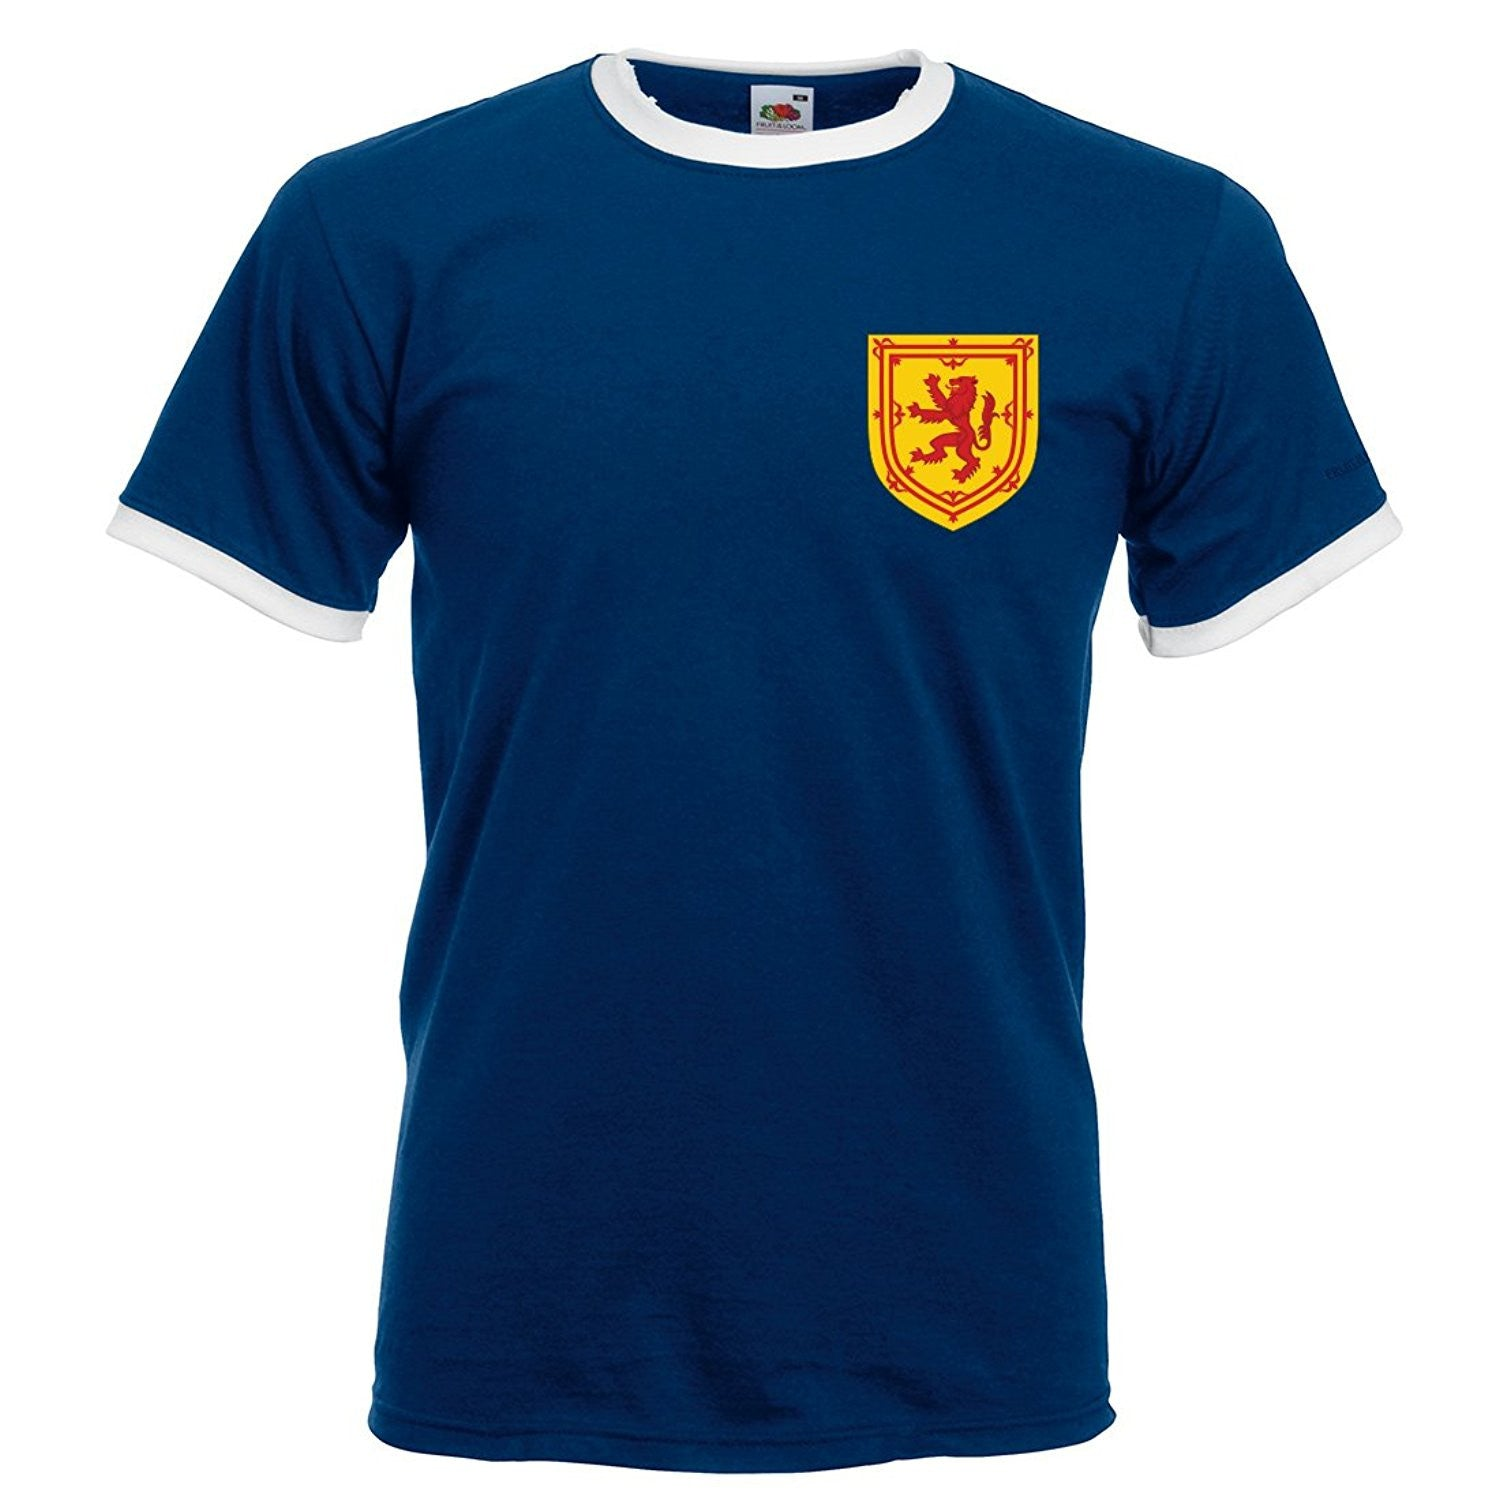 d945eeee8 Scotland Scottish Vintage Retro Style Football T-Shirt Men s - Blue Front